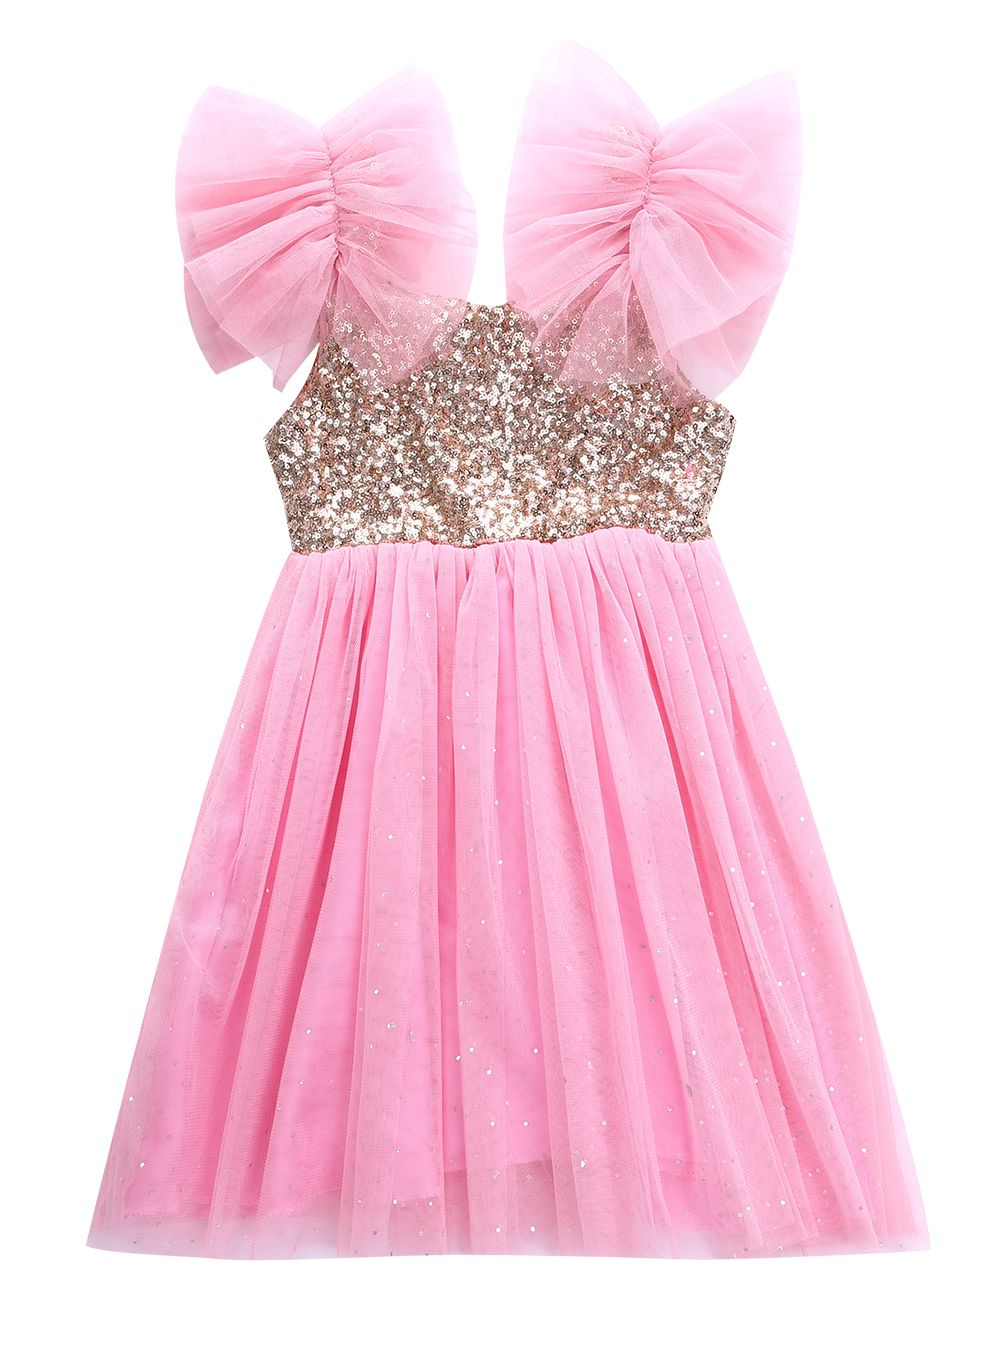 New Bling Pinks Princess Children Baby Girls Clothing Dress Party ...